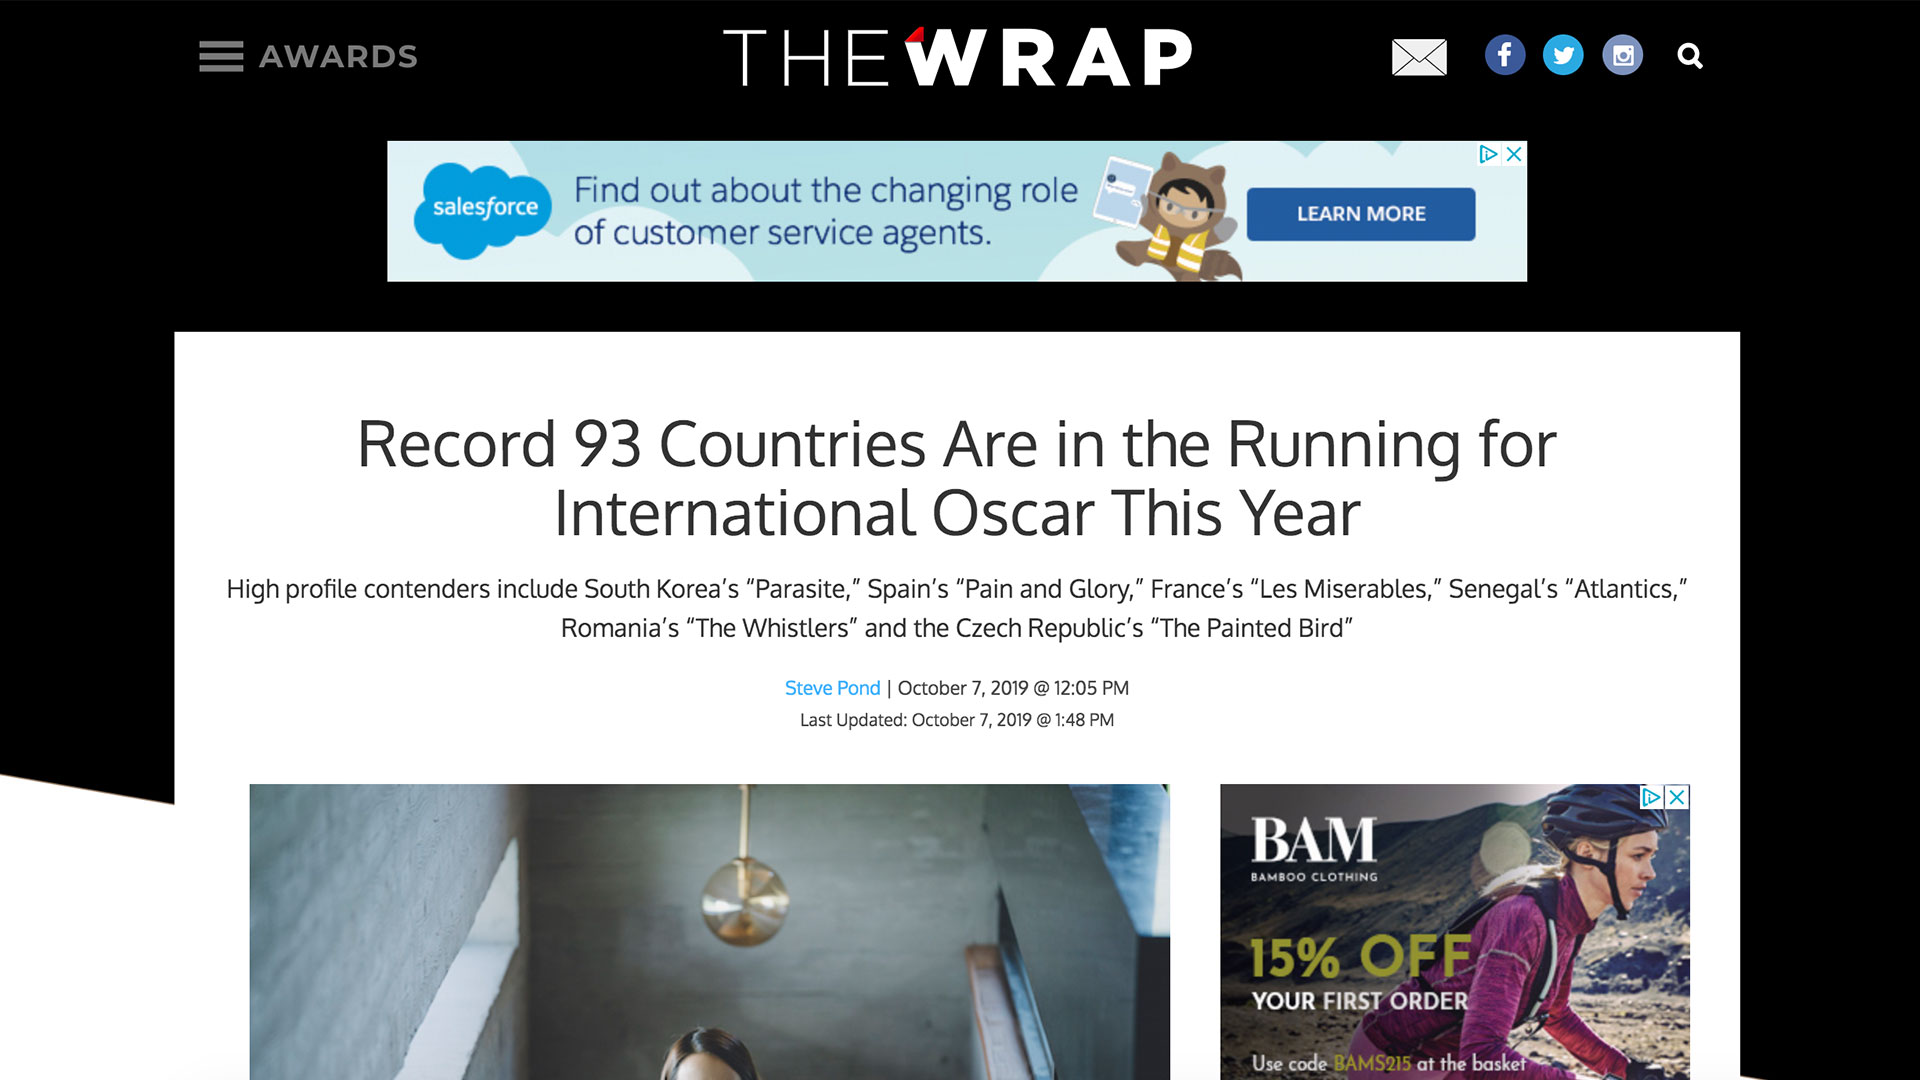 Fairness Rocks News Record 93 Countries Are in the Running for International Oscar This Year